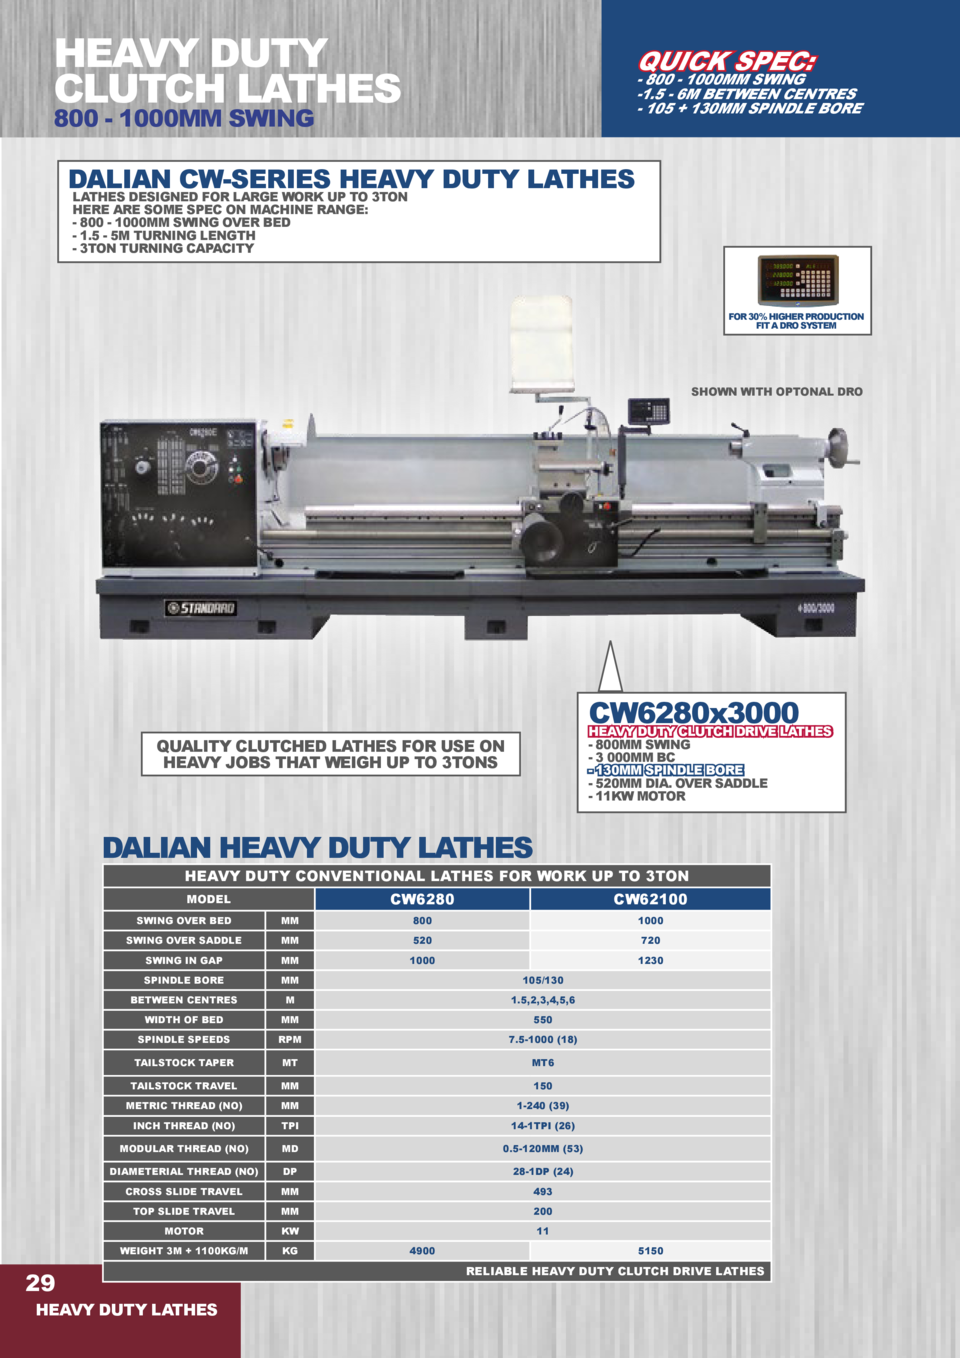 HEAVY DUTY CLUTCH LATHES  QUICK SPEC   - 800 - 1000MM SWING -1.5 - 6M BETWEEN CENTRES - 105   130MM SPINDLE BORE  800 - 10...